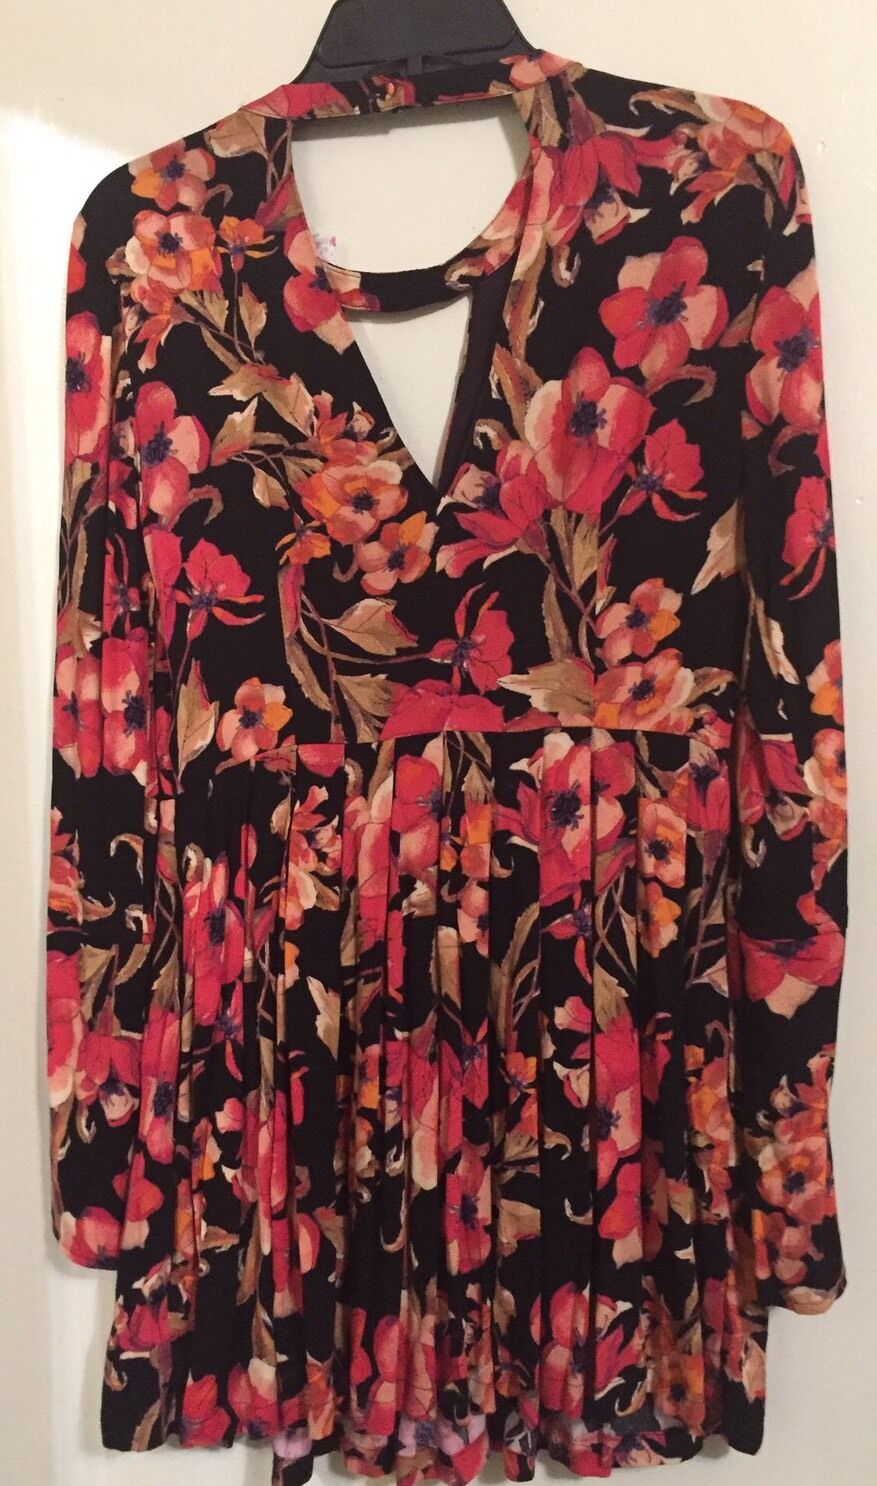 Free People Printed Cutout Mini Dress In schwarz Combo Größe 6 NWT OB53652